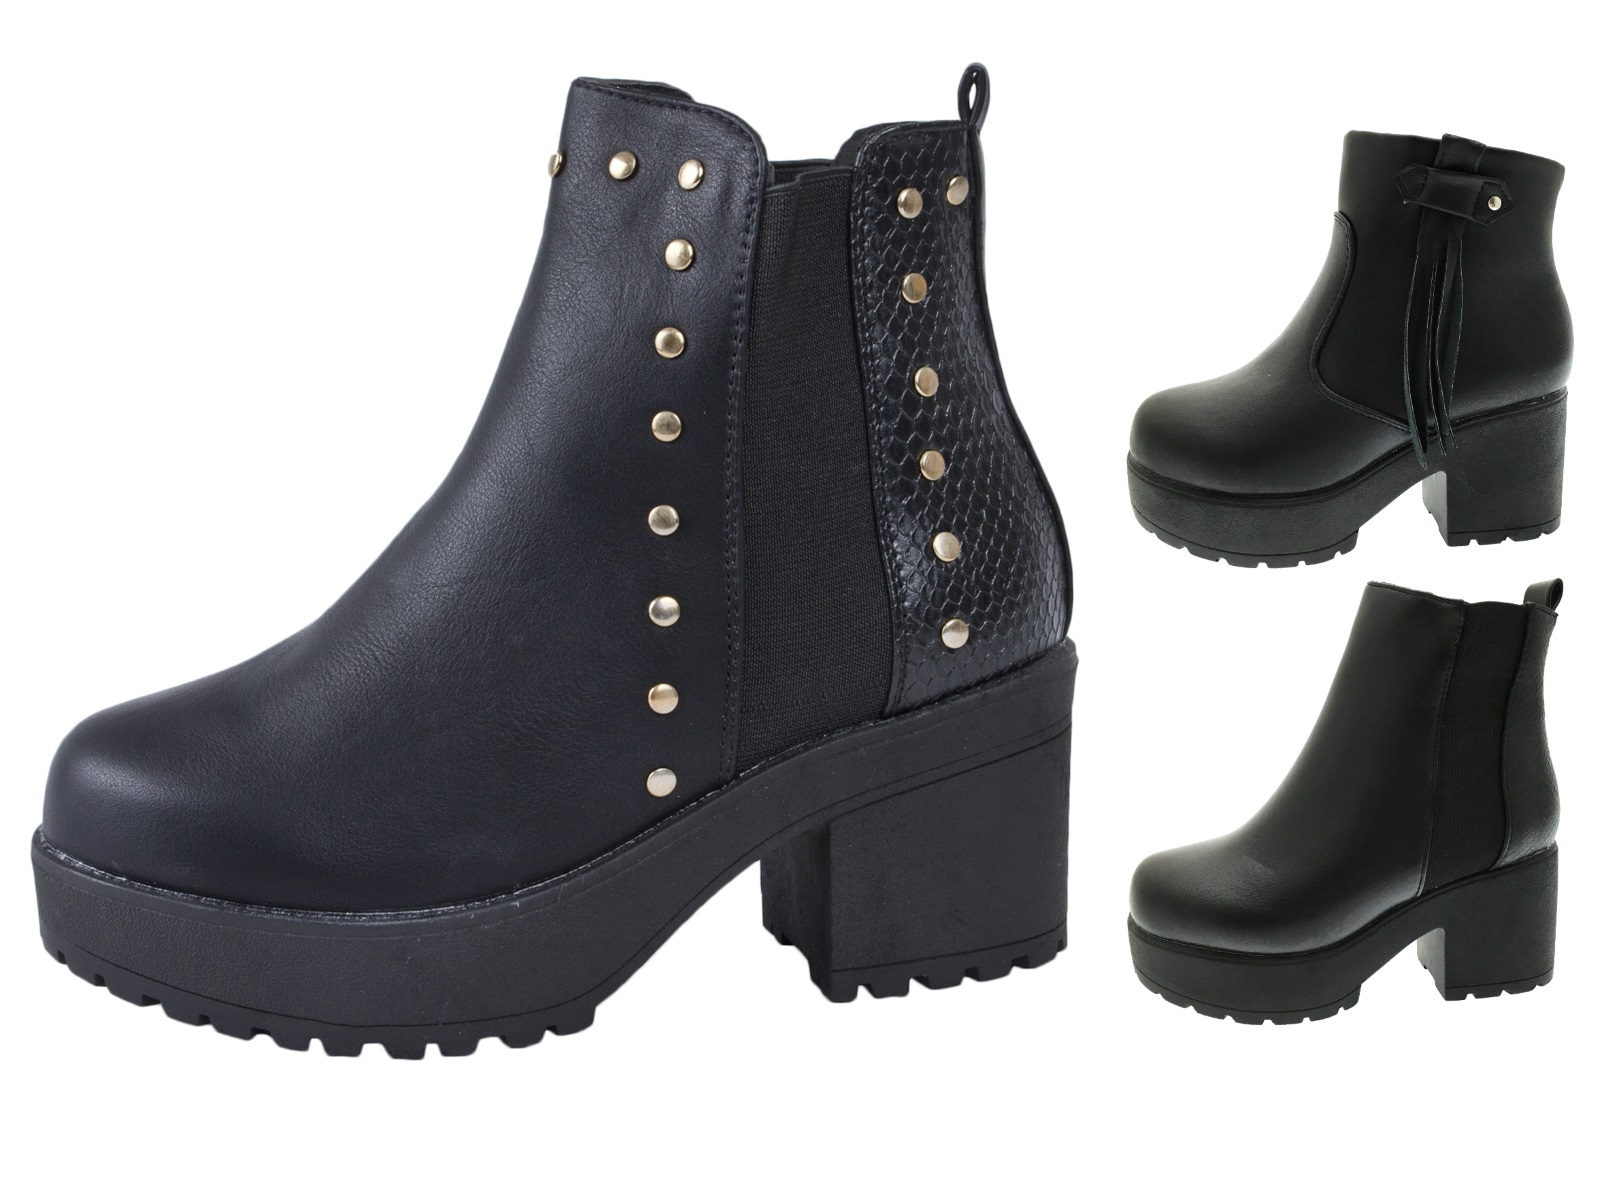 346a602f487 Details about Kids Girls Mid Chunky Block Heel Chelsea Low Ankle Boots  Platforms Shoes Size